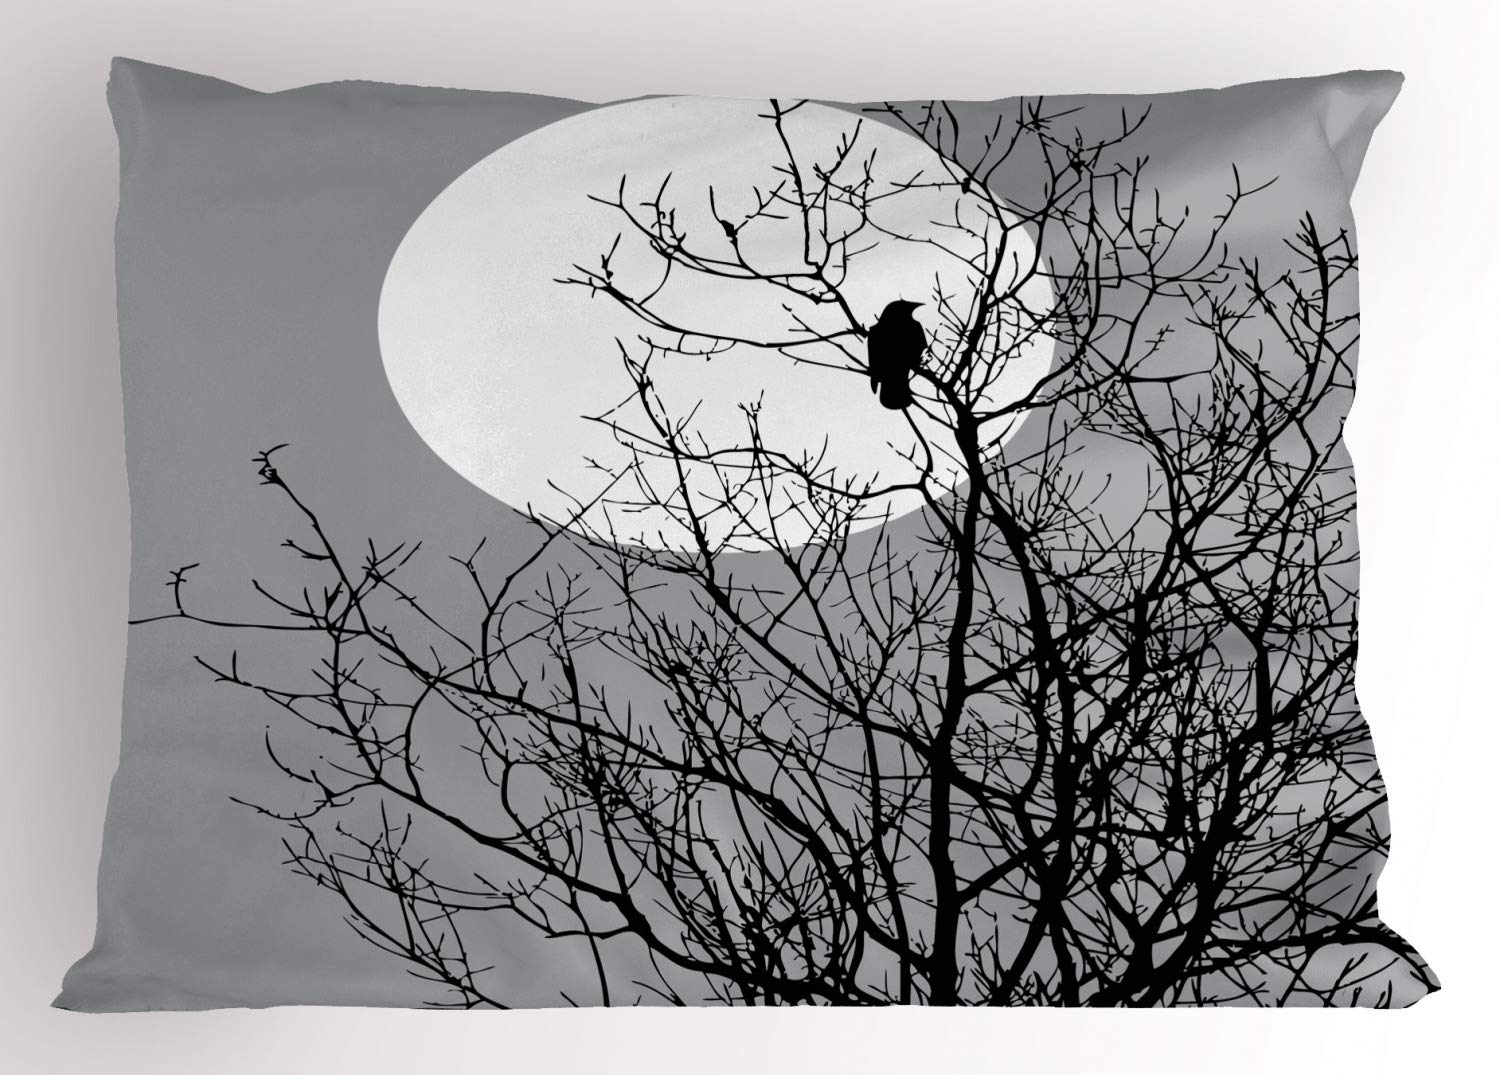 Grey Black 30 X 20 Crow Sitting on Leafless Tree Branches Against Full Moon Sky Illustration Decorative Standard Queen Size Printed Pillowcase Lunarable Crow Pillow Sham